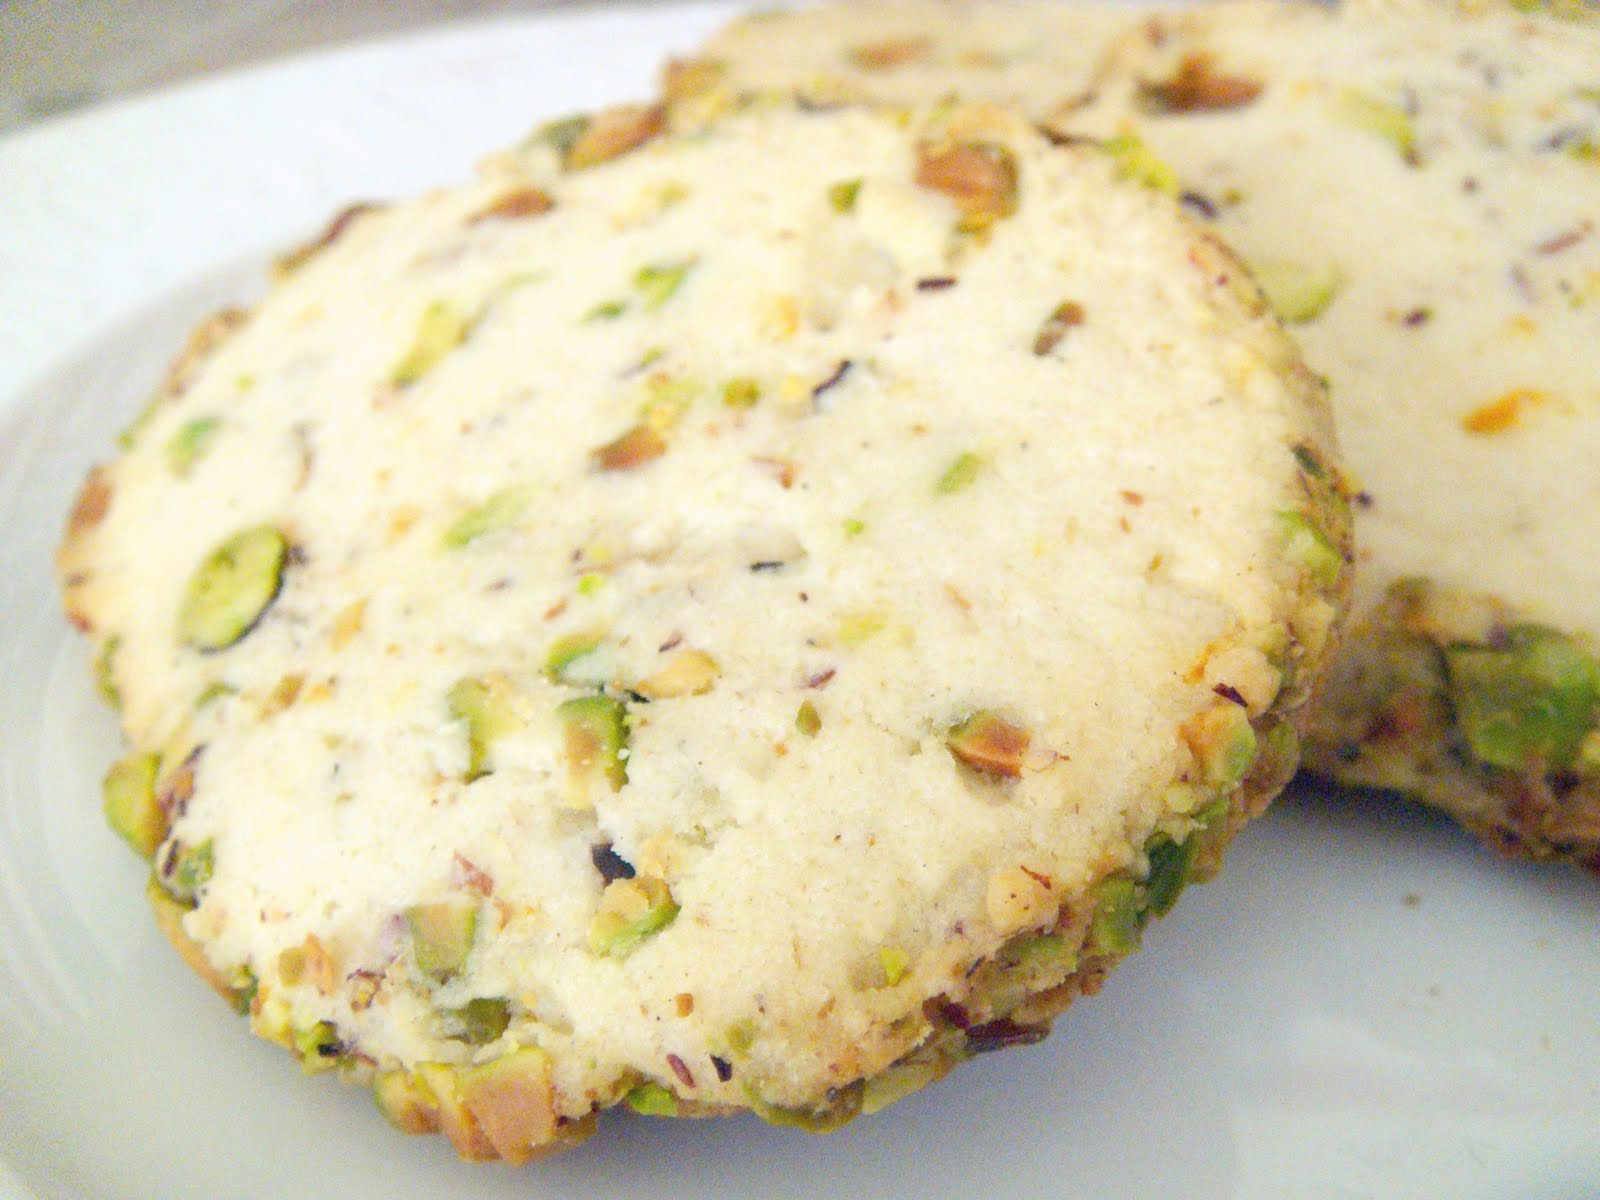 Pistachio Cardamom Cookies - Baked by Joanna